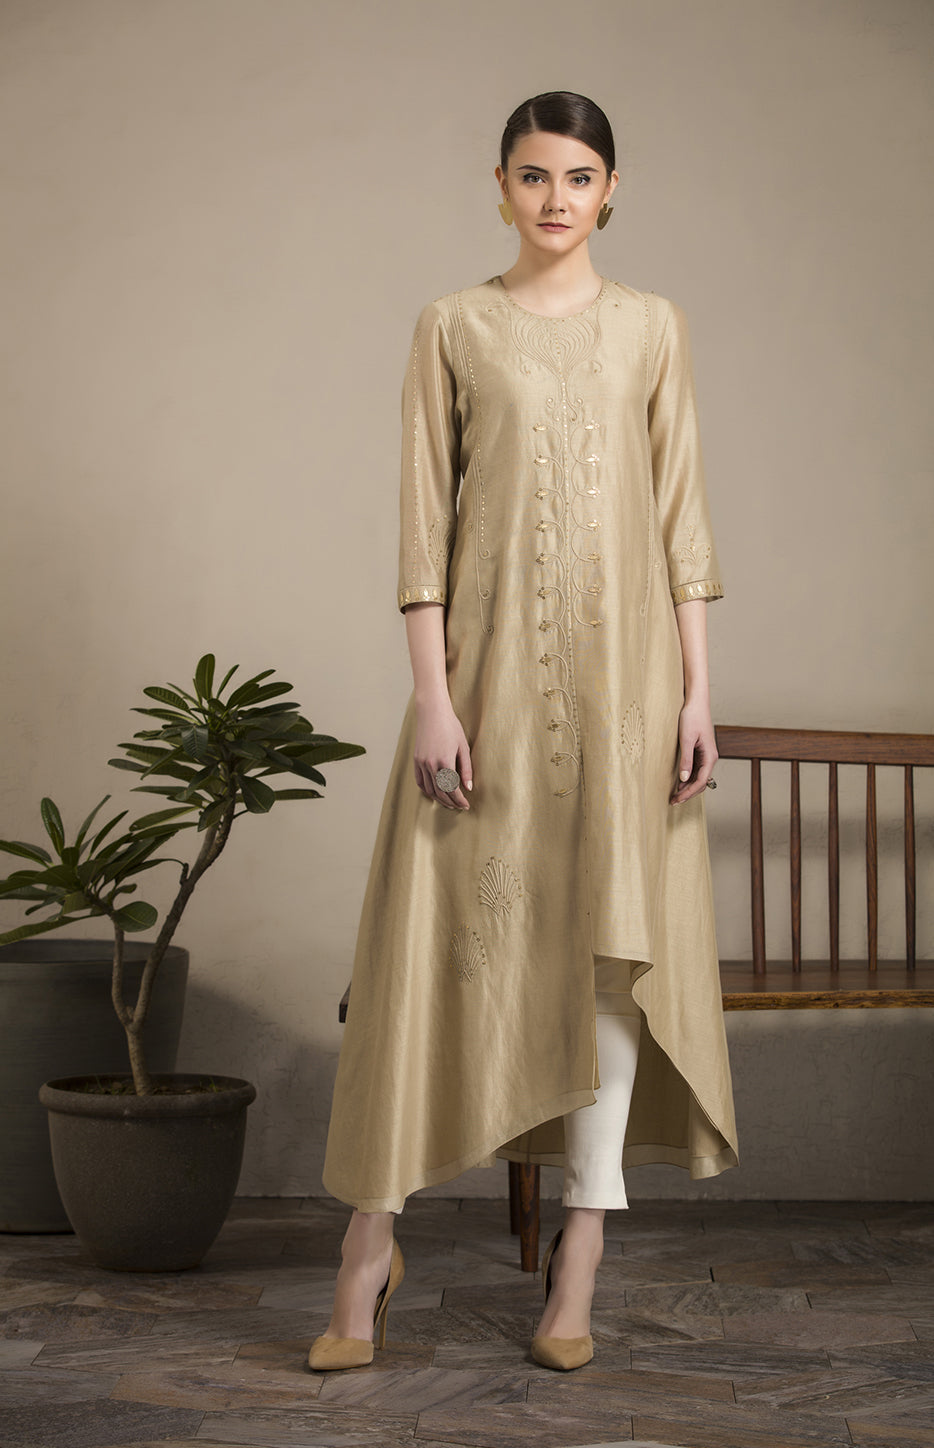 Burly Wood Moss Tunic in Chanderi, Cotton Satin Lycra - 2829